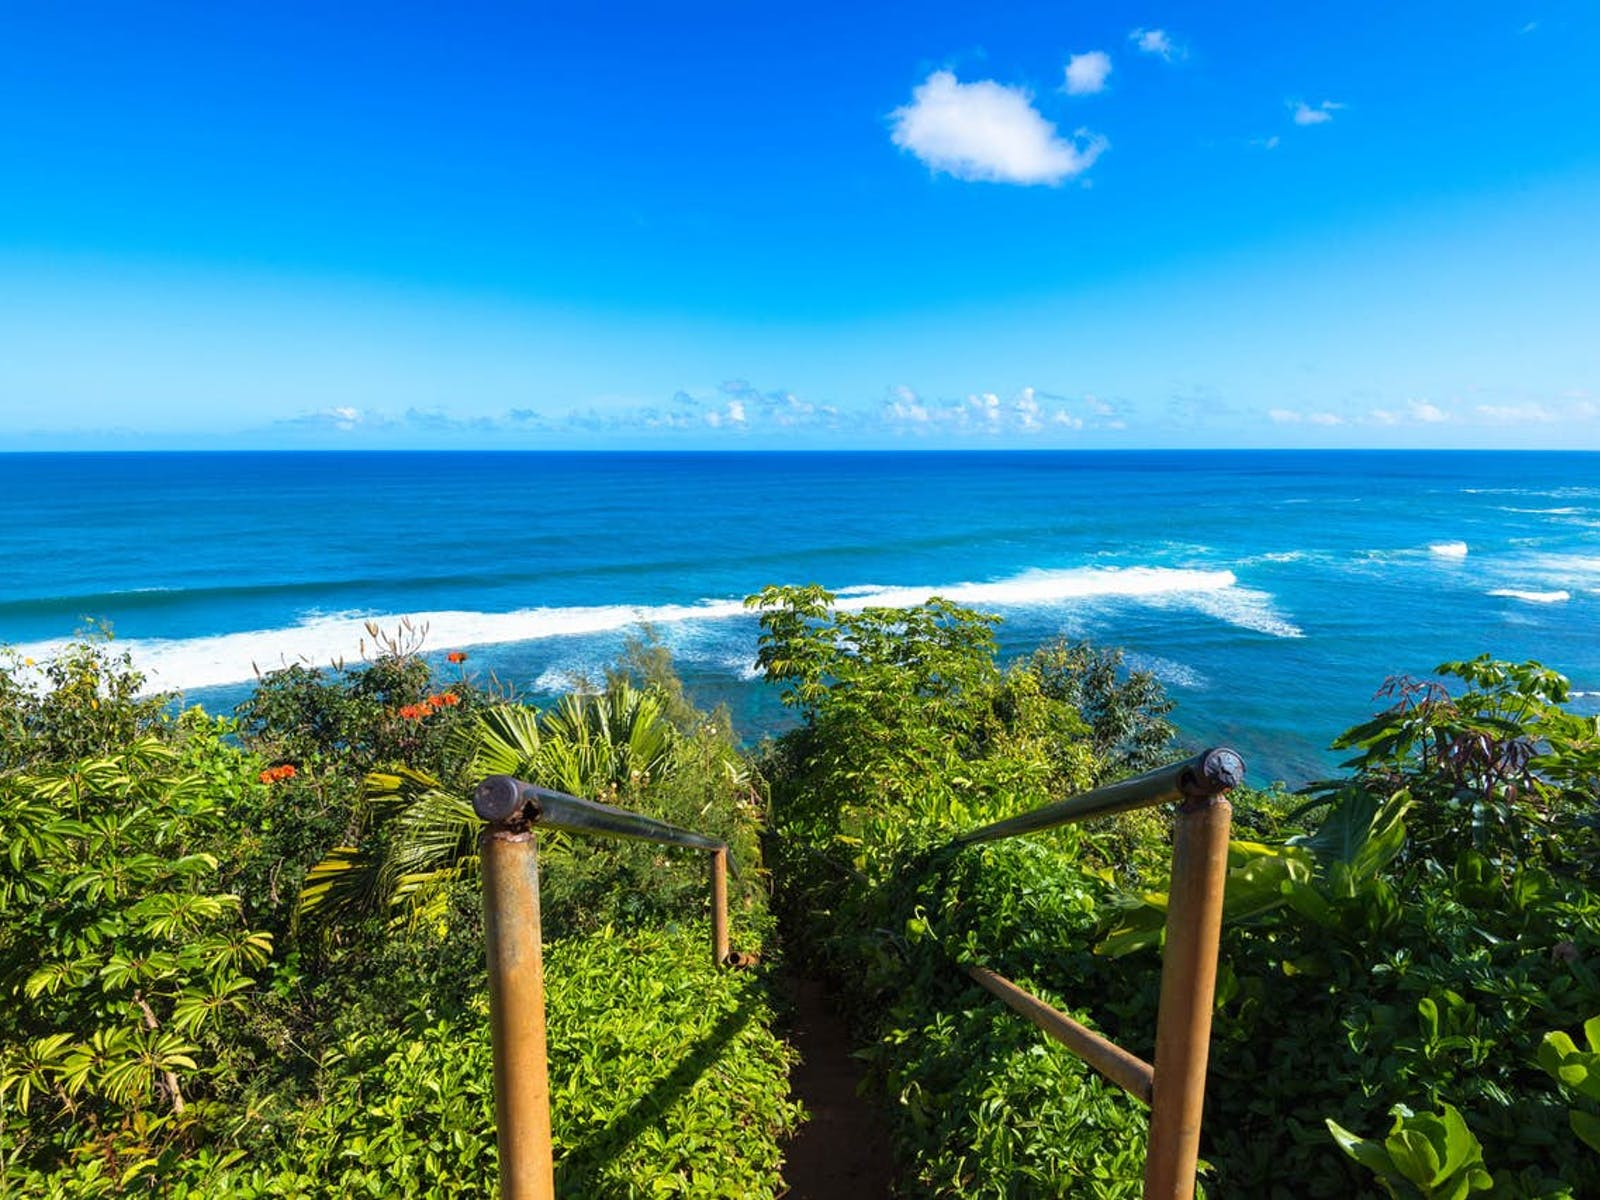 Stairway in Hawaii surrounded by lush scenery that leads to the ocean